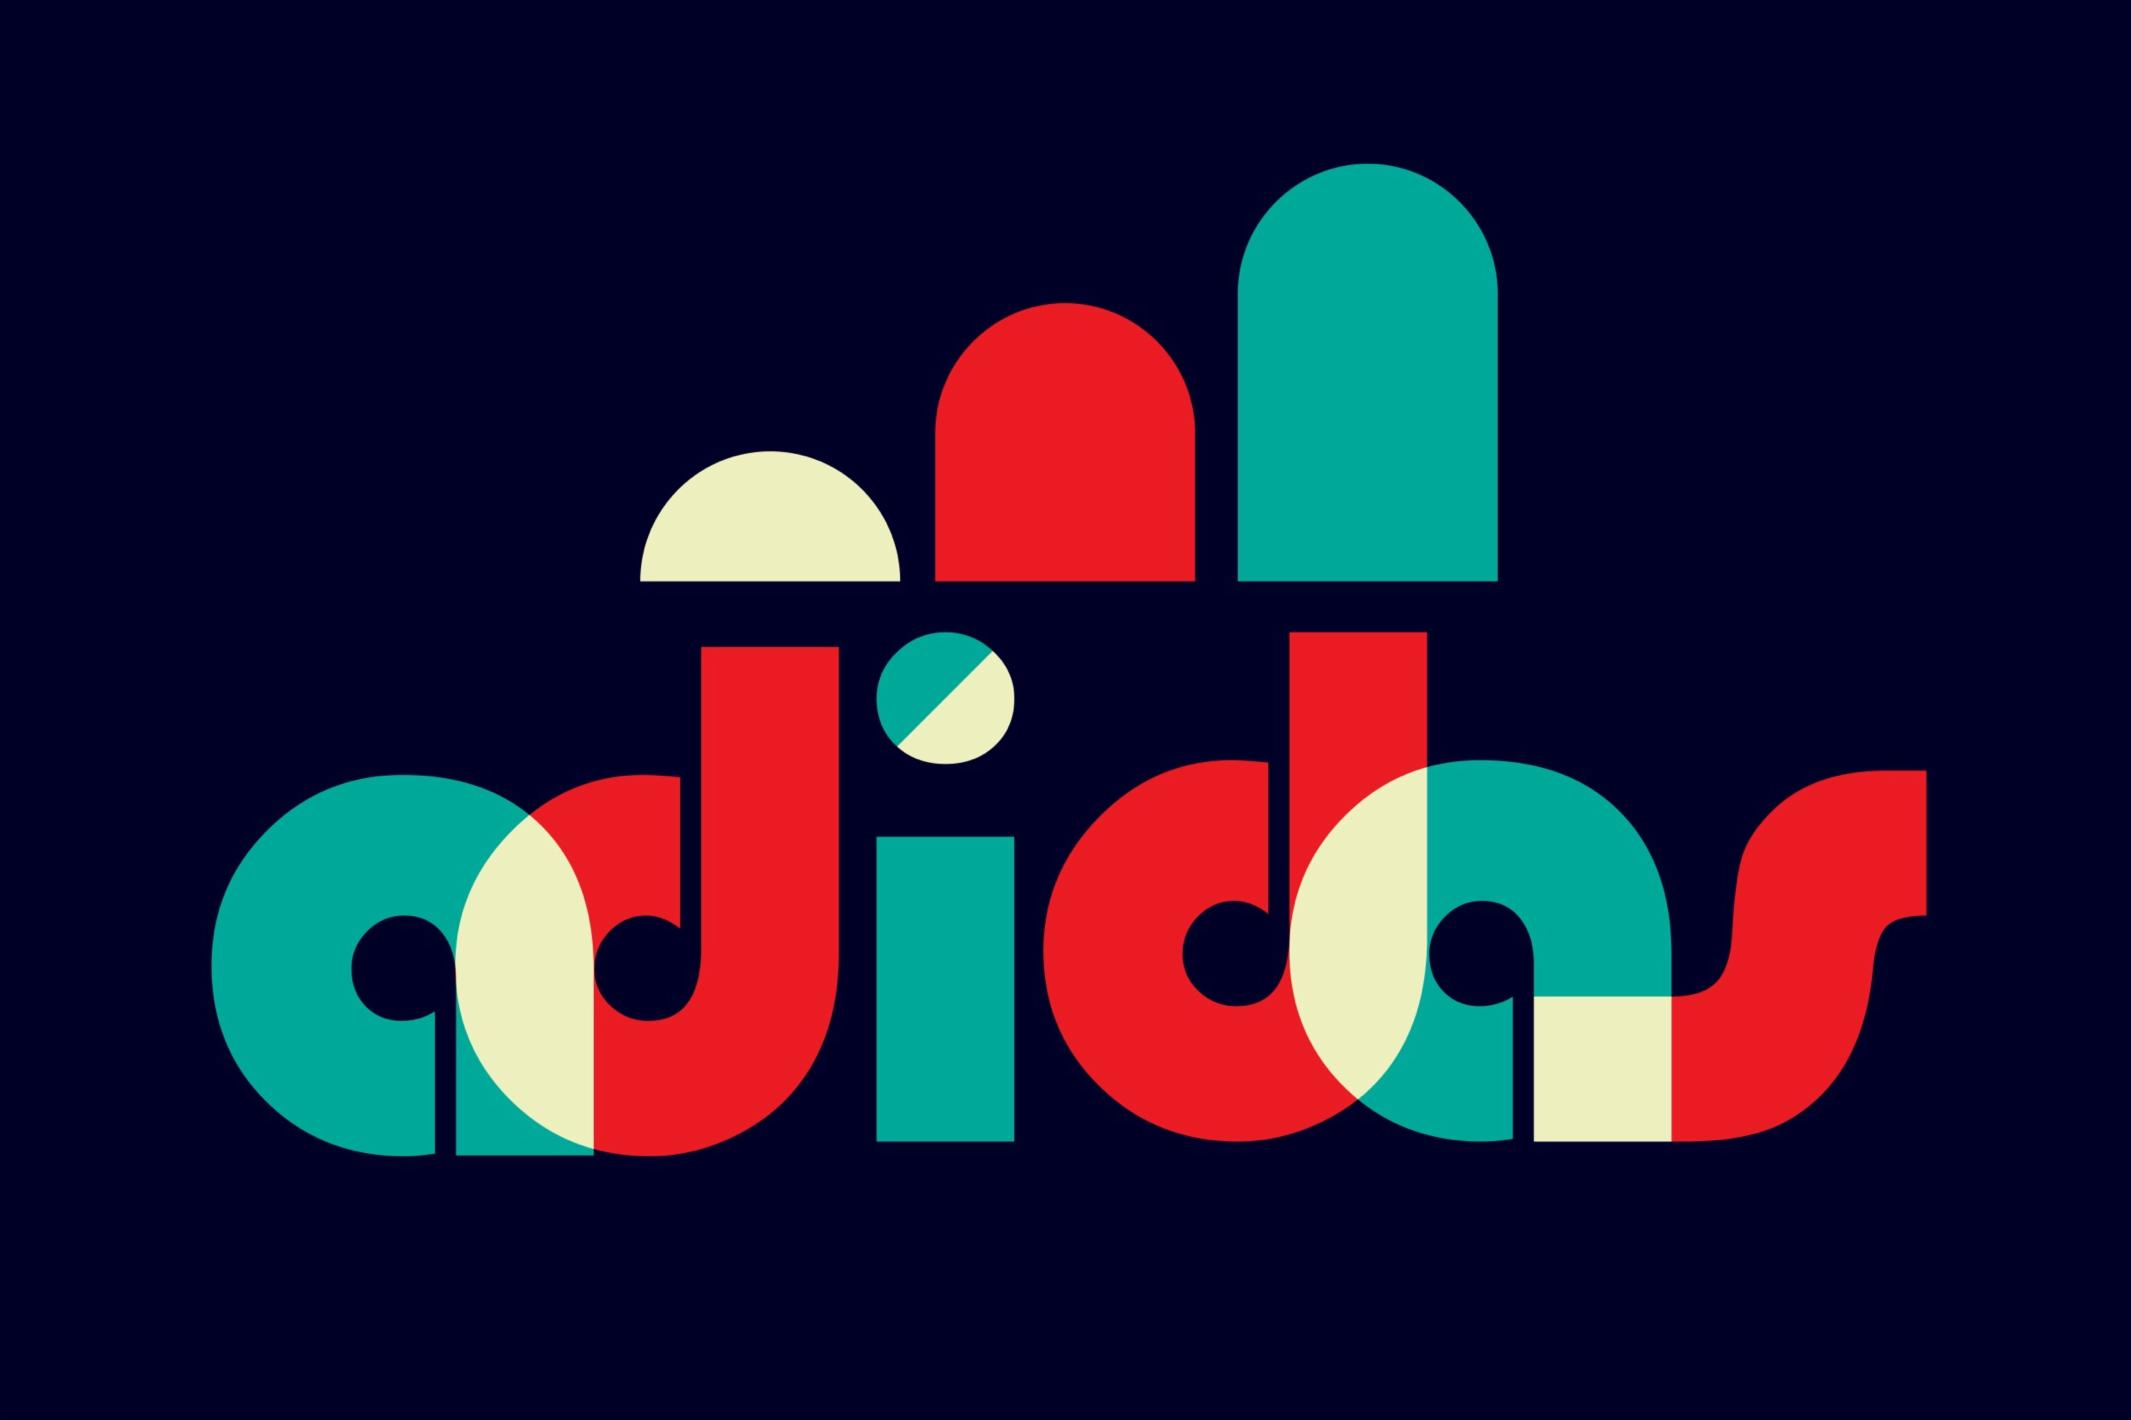 These Famous Logos Were Given the Bauhaus Treatment